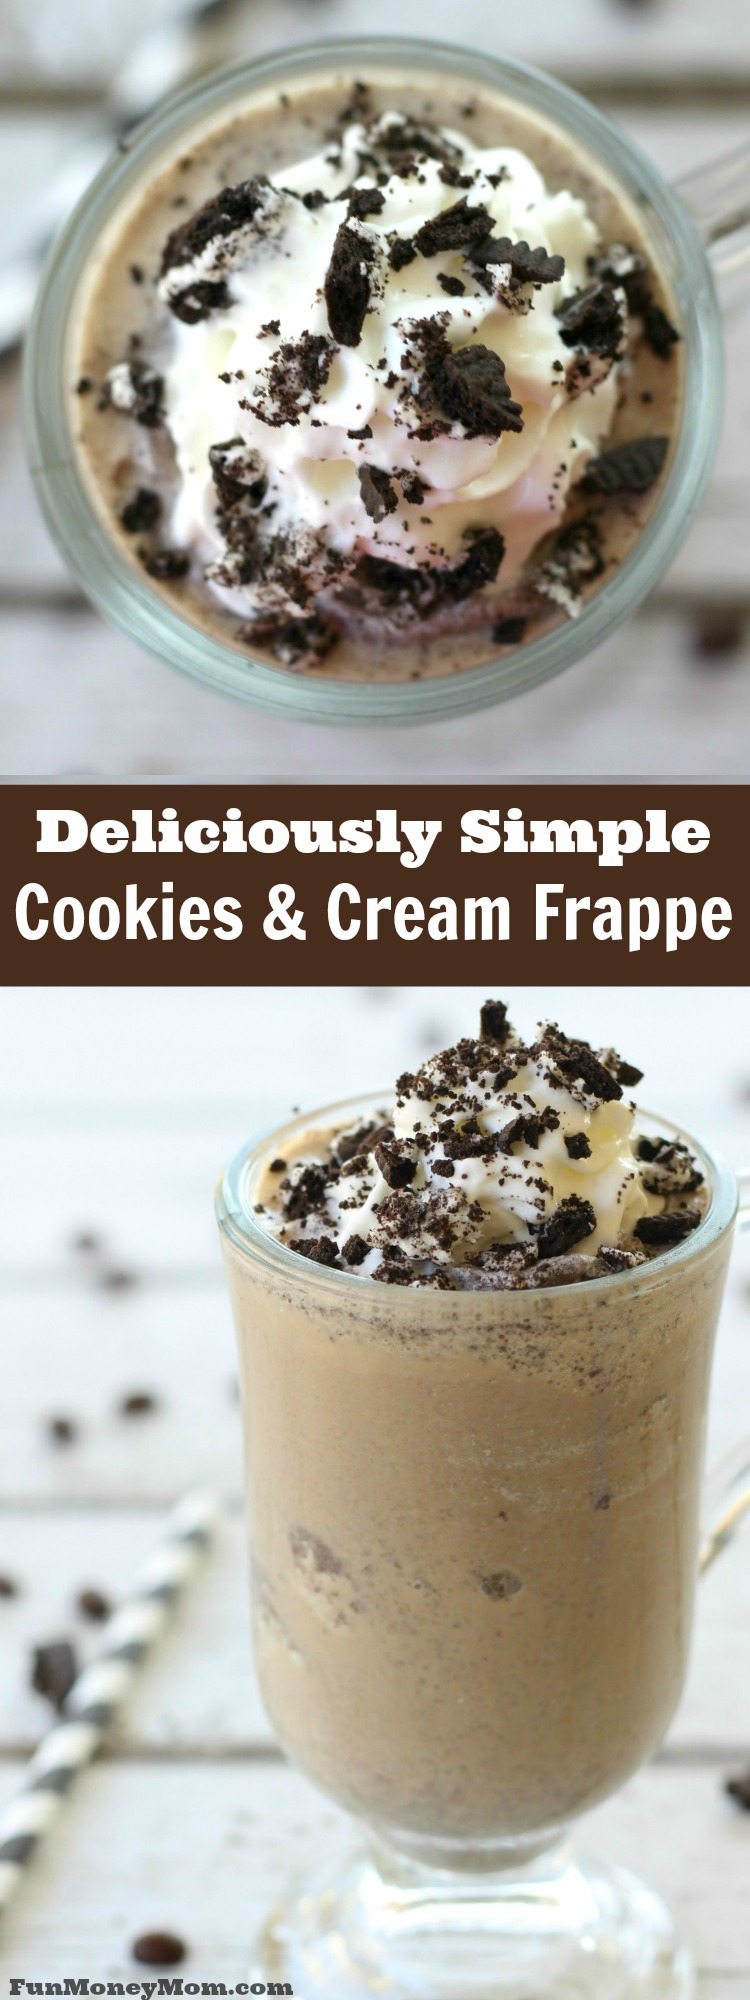 Save money at the coffee shop by making this delicious cookies and cream frappe coffee drink at home!